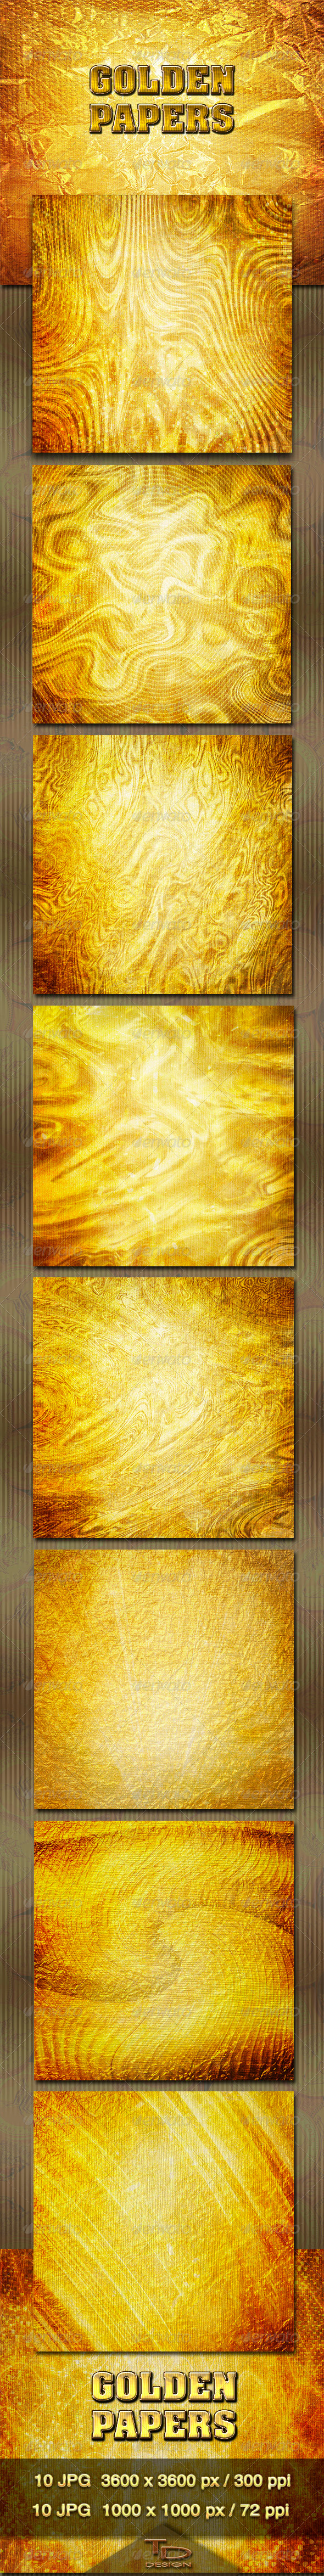 GraphicRiver Golden Papers 3441538